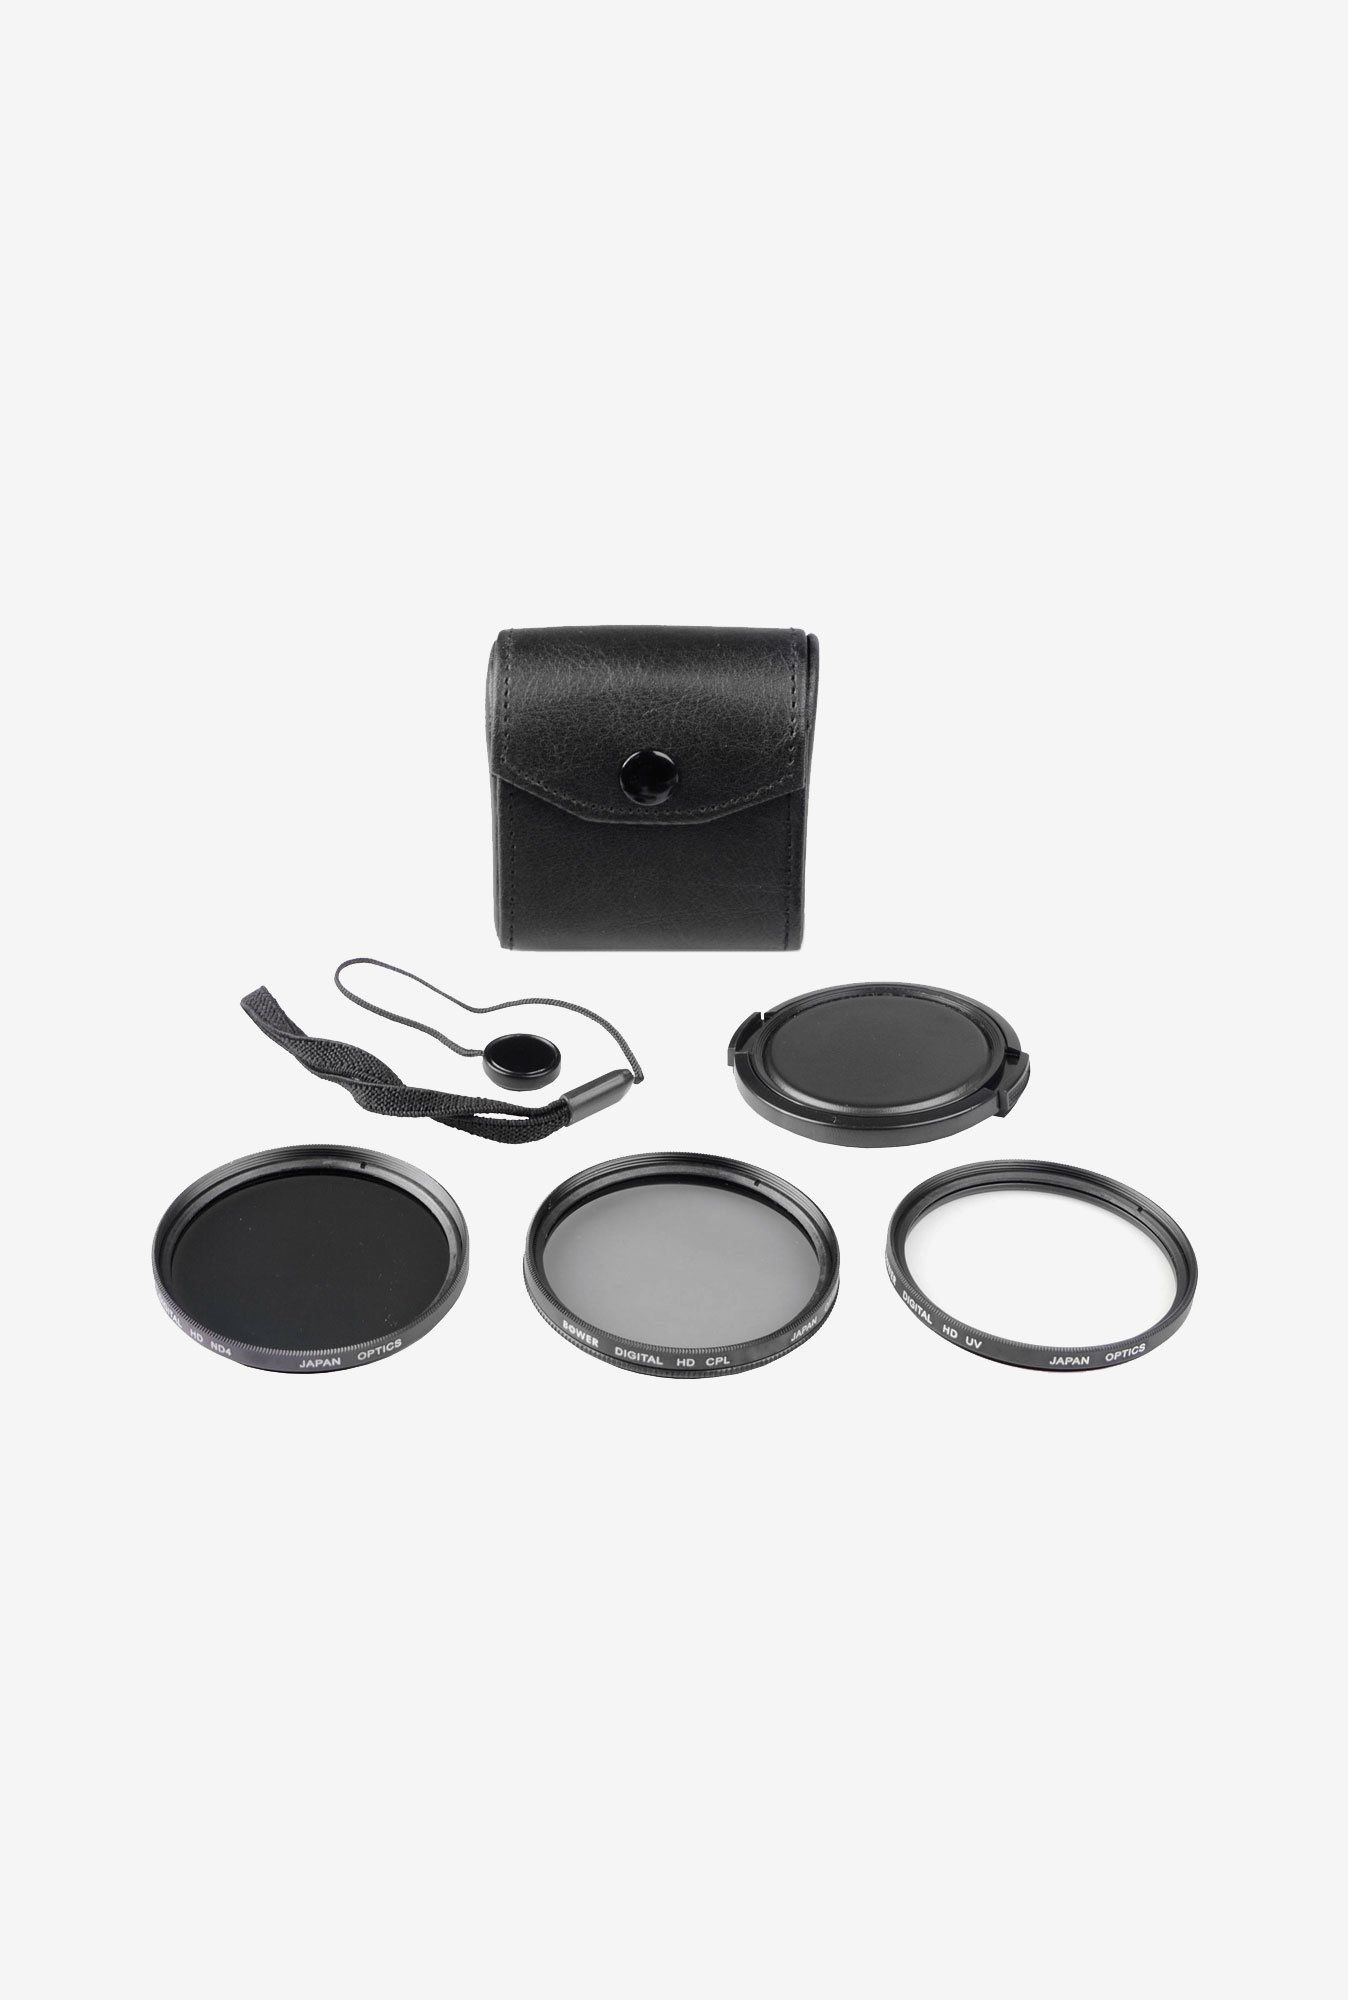 Bower VFK67C 5-Piece Digital Filter Kit (Black)